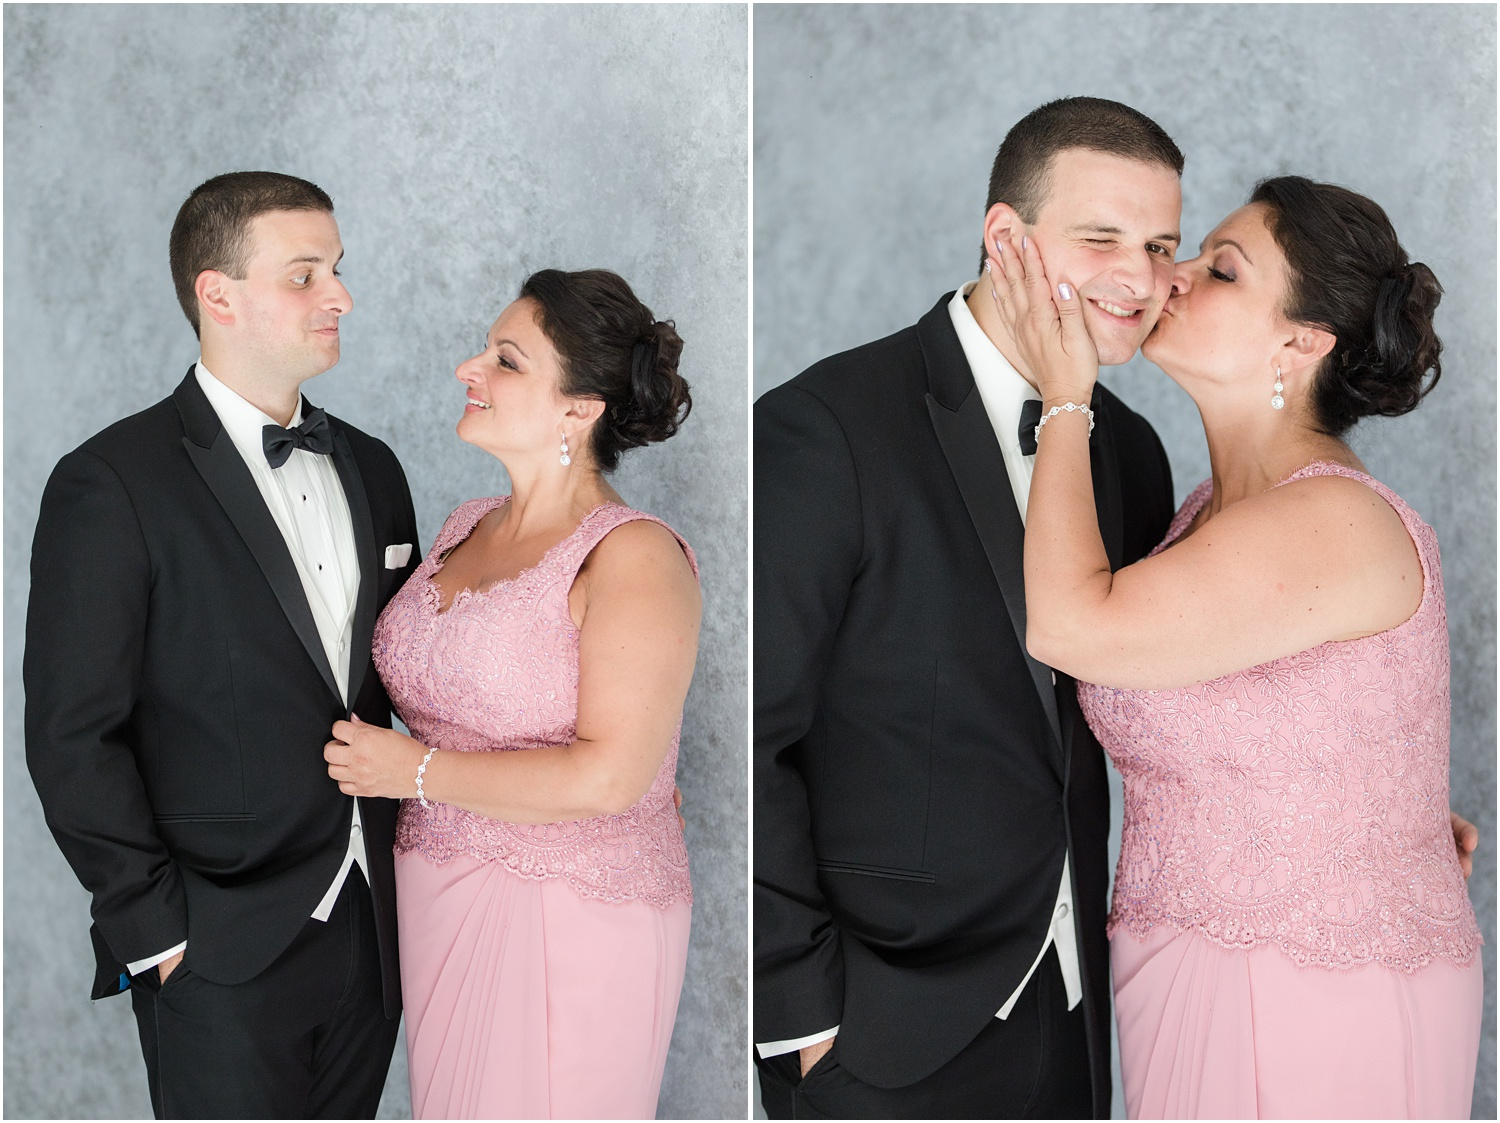 The groom having fun with his mom before the wedding ceremony in Toms River, NJ.